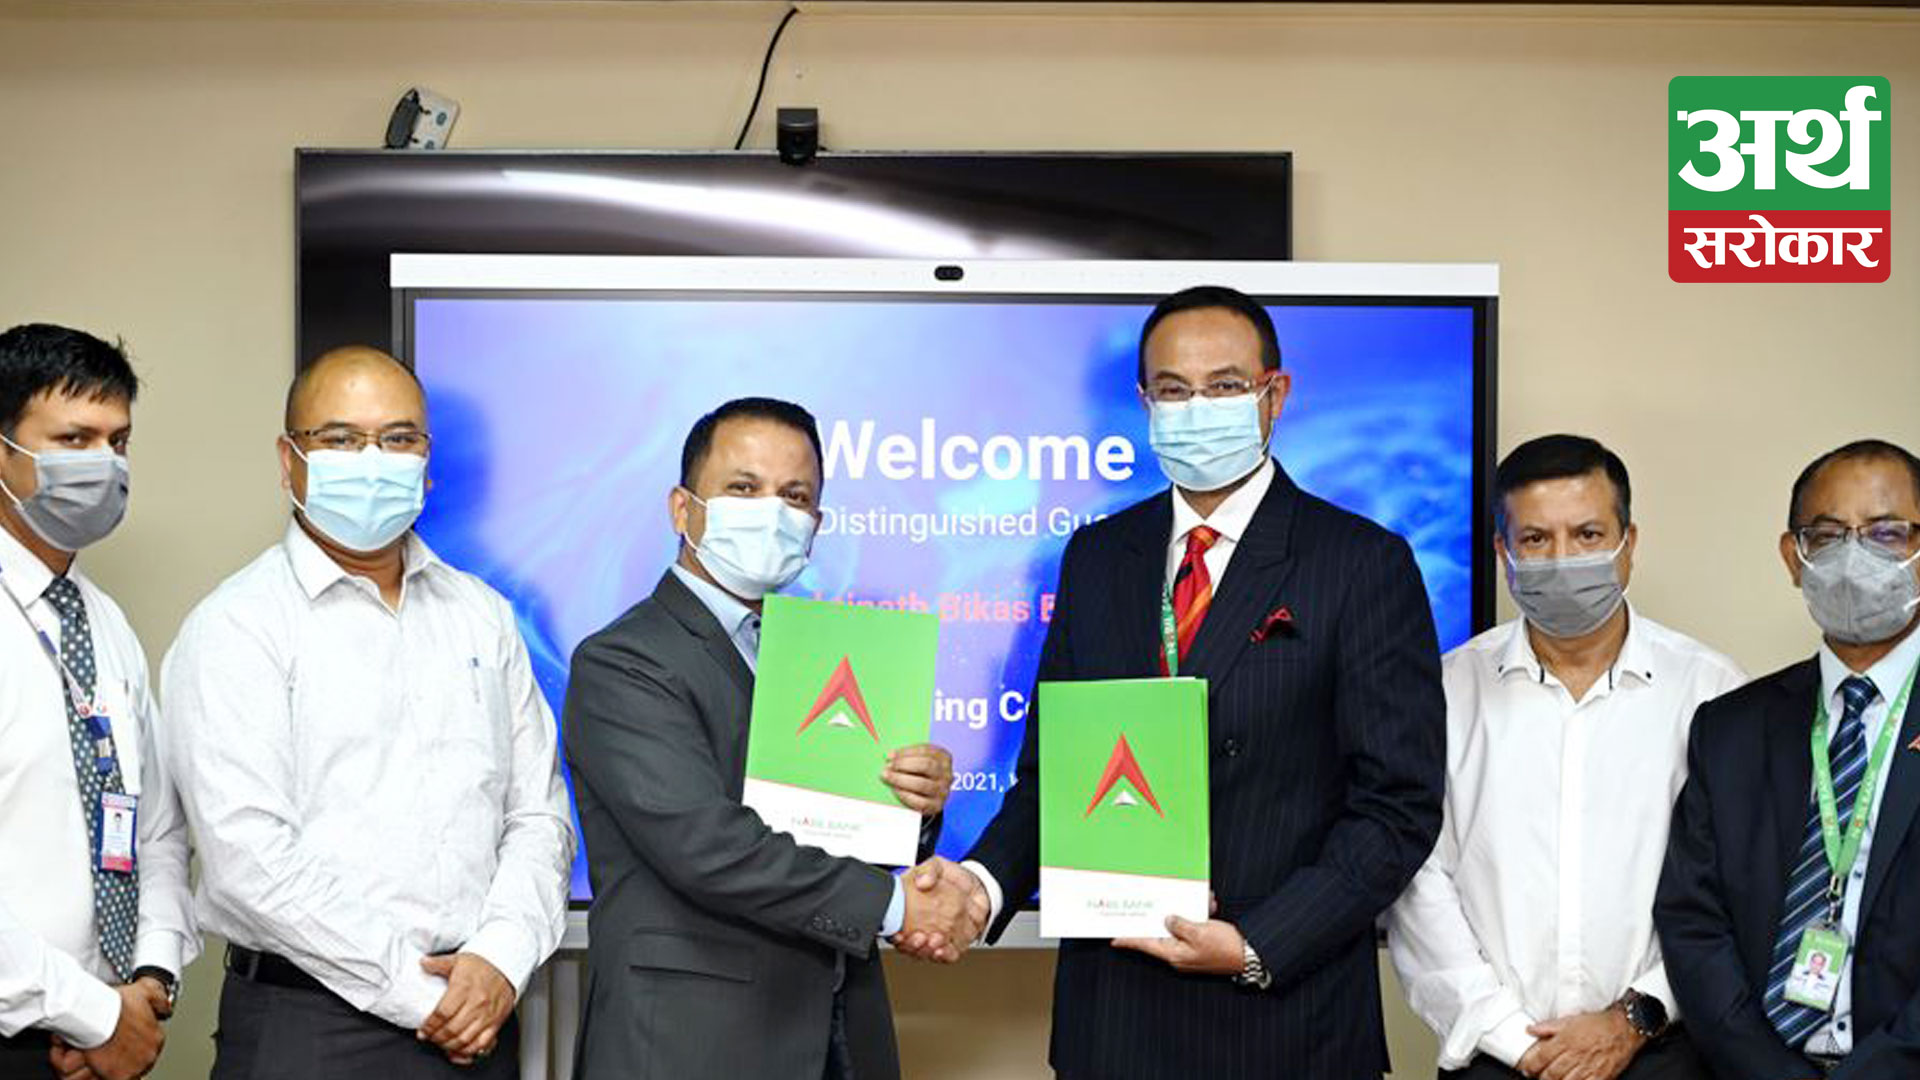 Nabil Bank enters into an agreement with Muktinath Bikas Bank for providing Value Added Services to customers